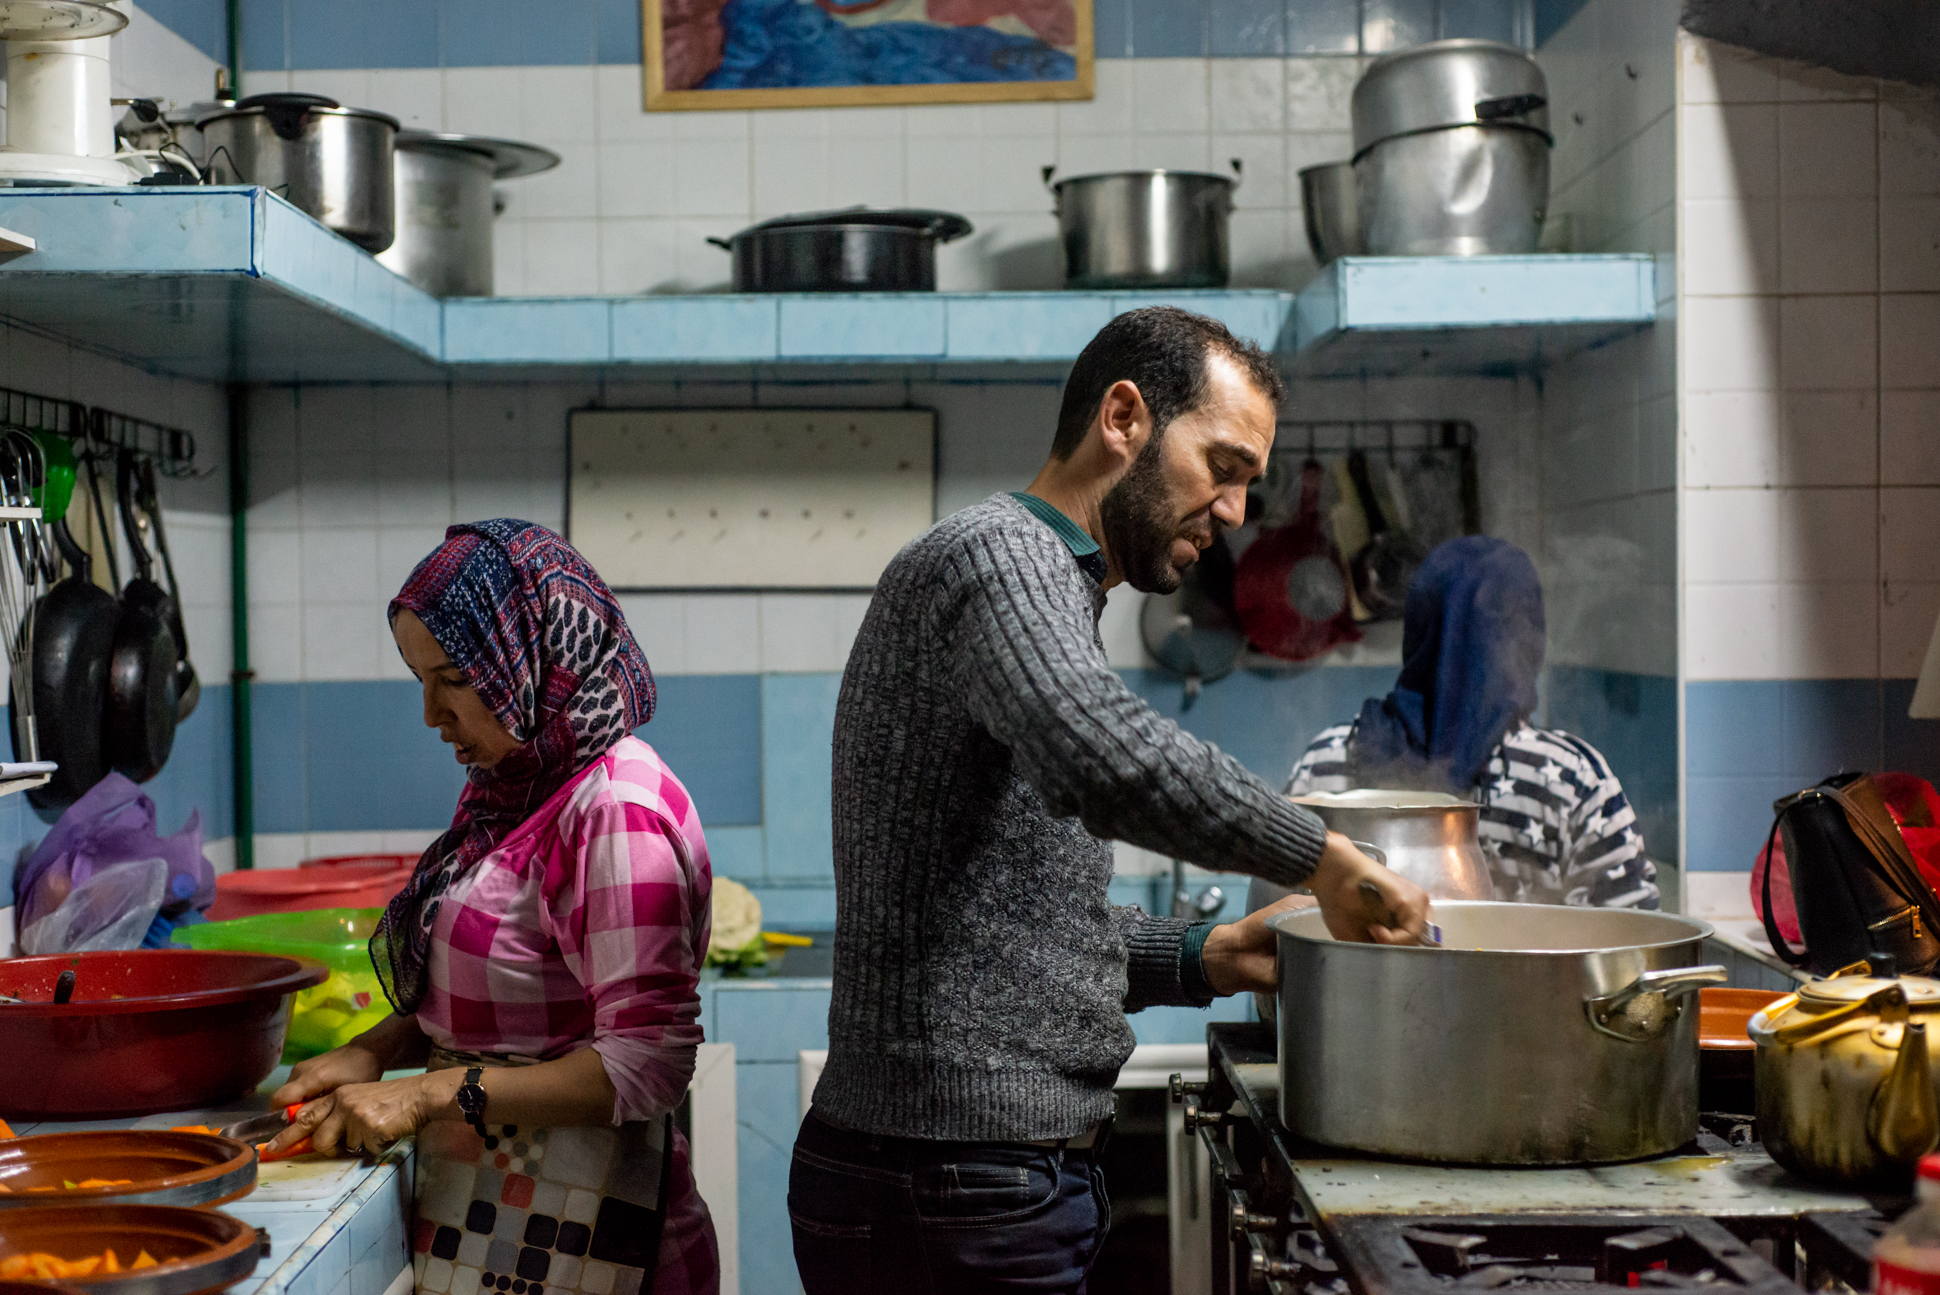 Daily life photography of a Moroccan man cooking in his kitchen with Tajine. Ellis Photography